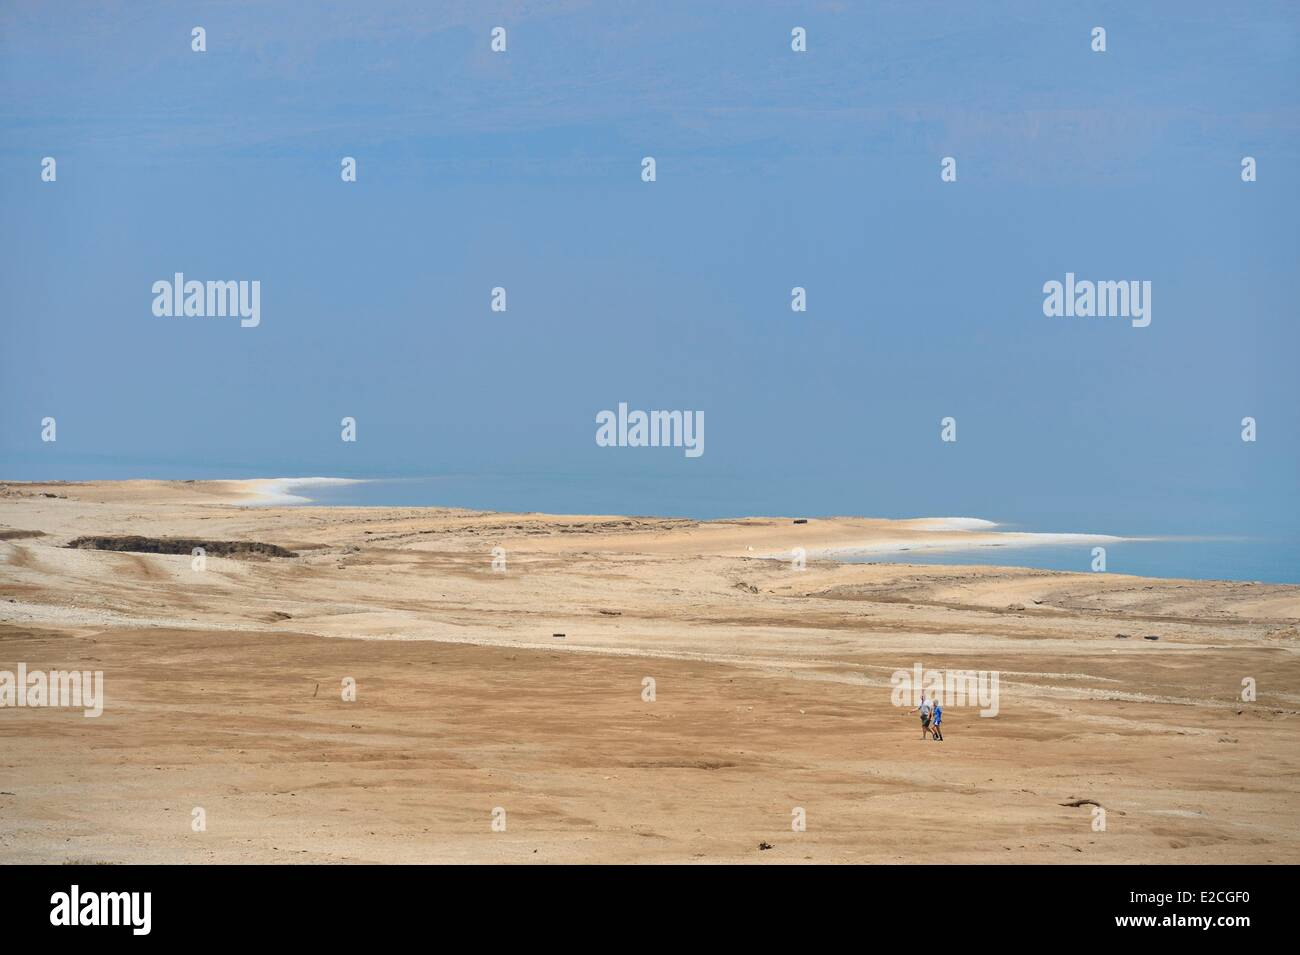 Israel, Southern district, Ein Gedi Beach on the Dead Sea - Stock Image